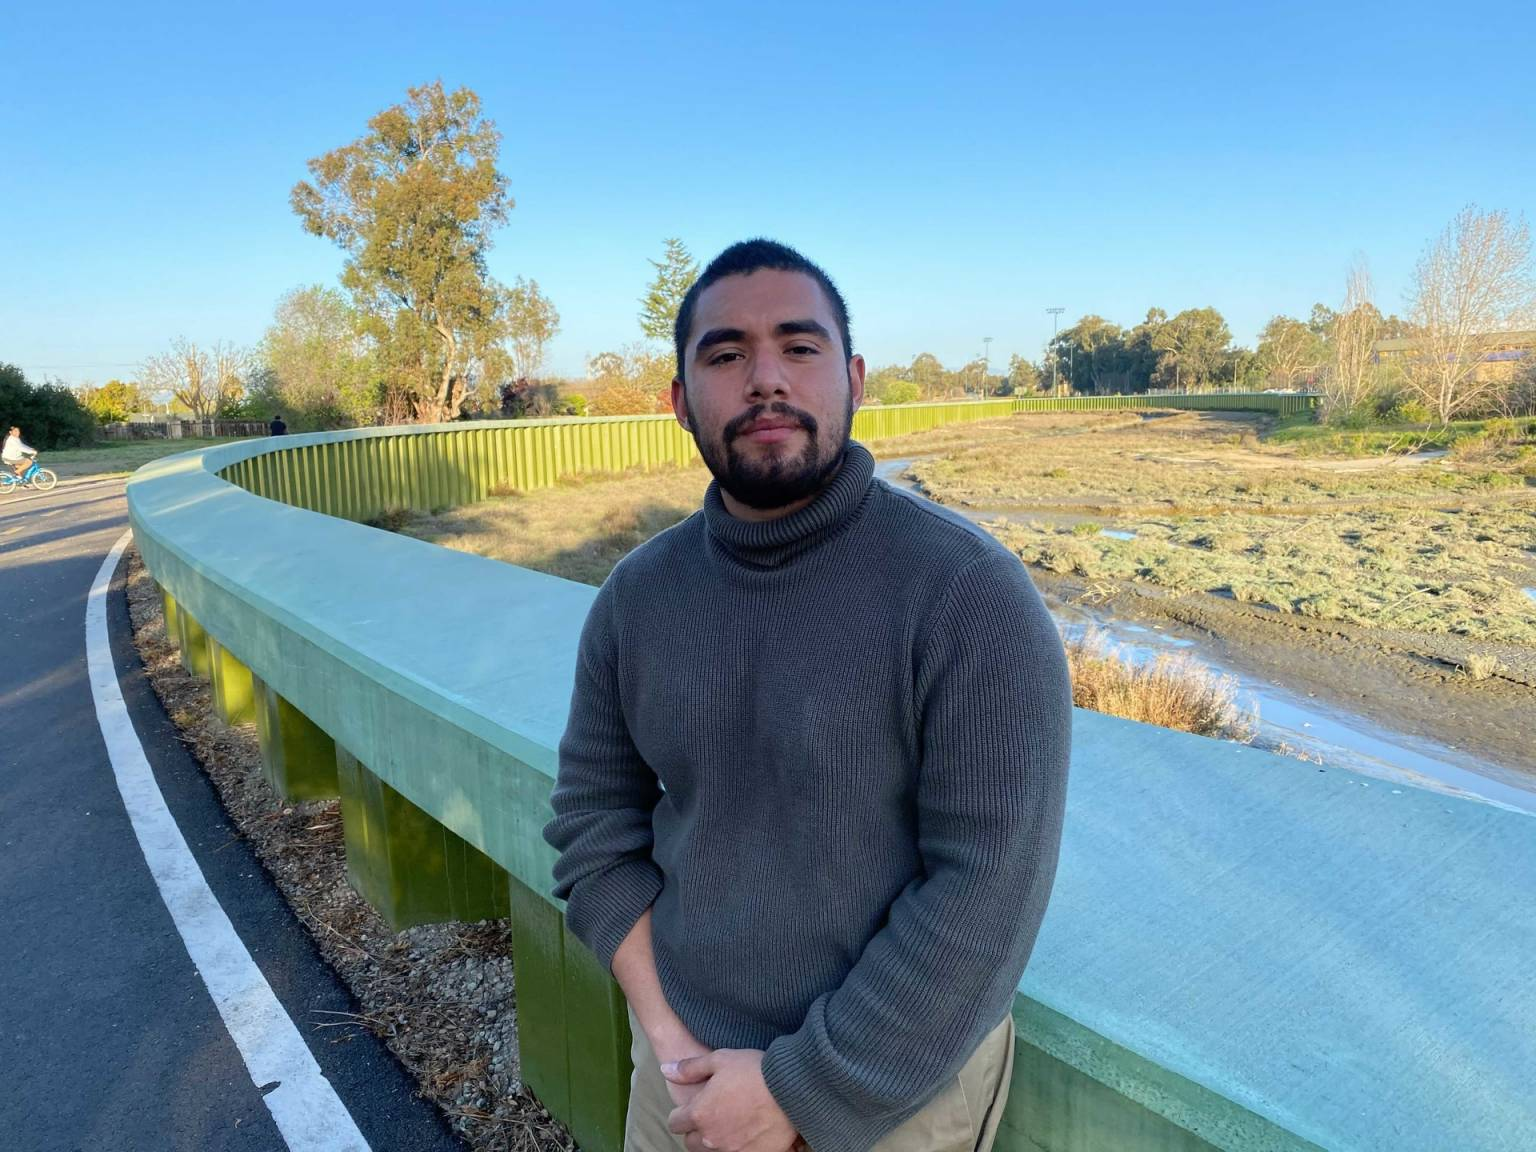 a man with a beard wearing a gray sweater leaning against a railing along the road